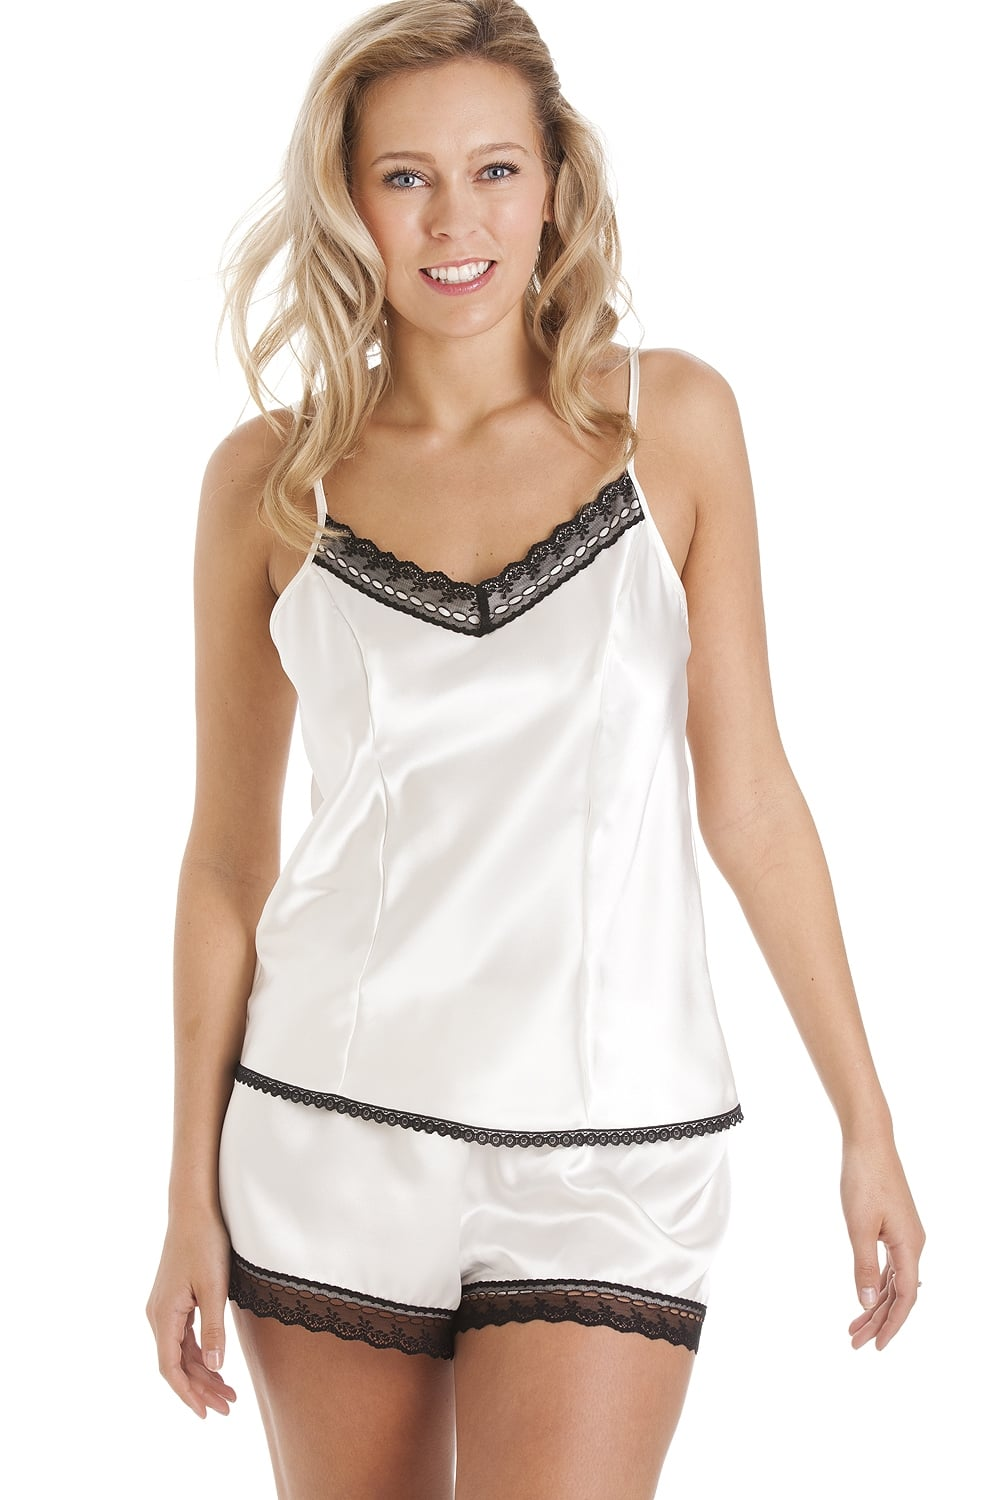 Luxury White Satin Cami Set